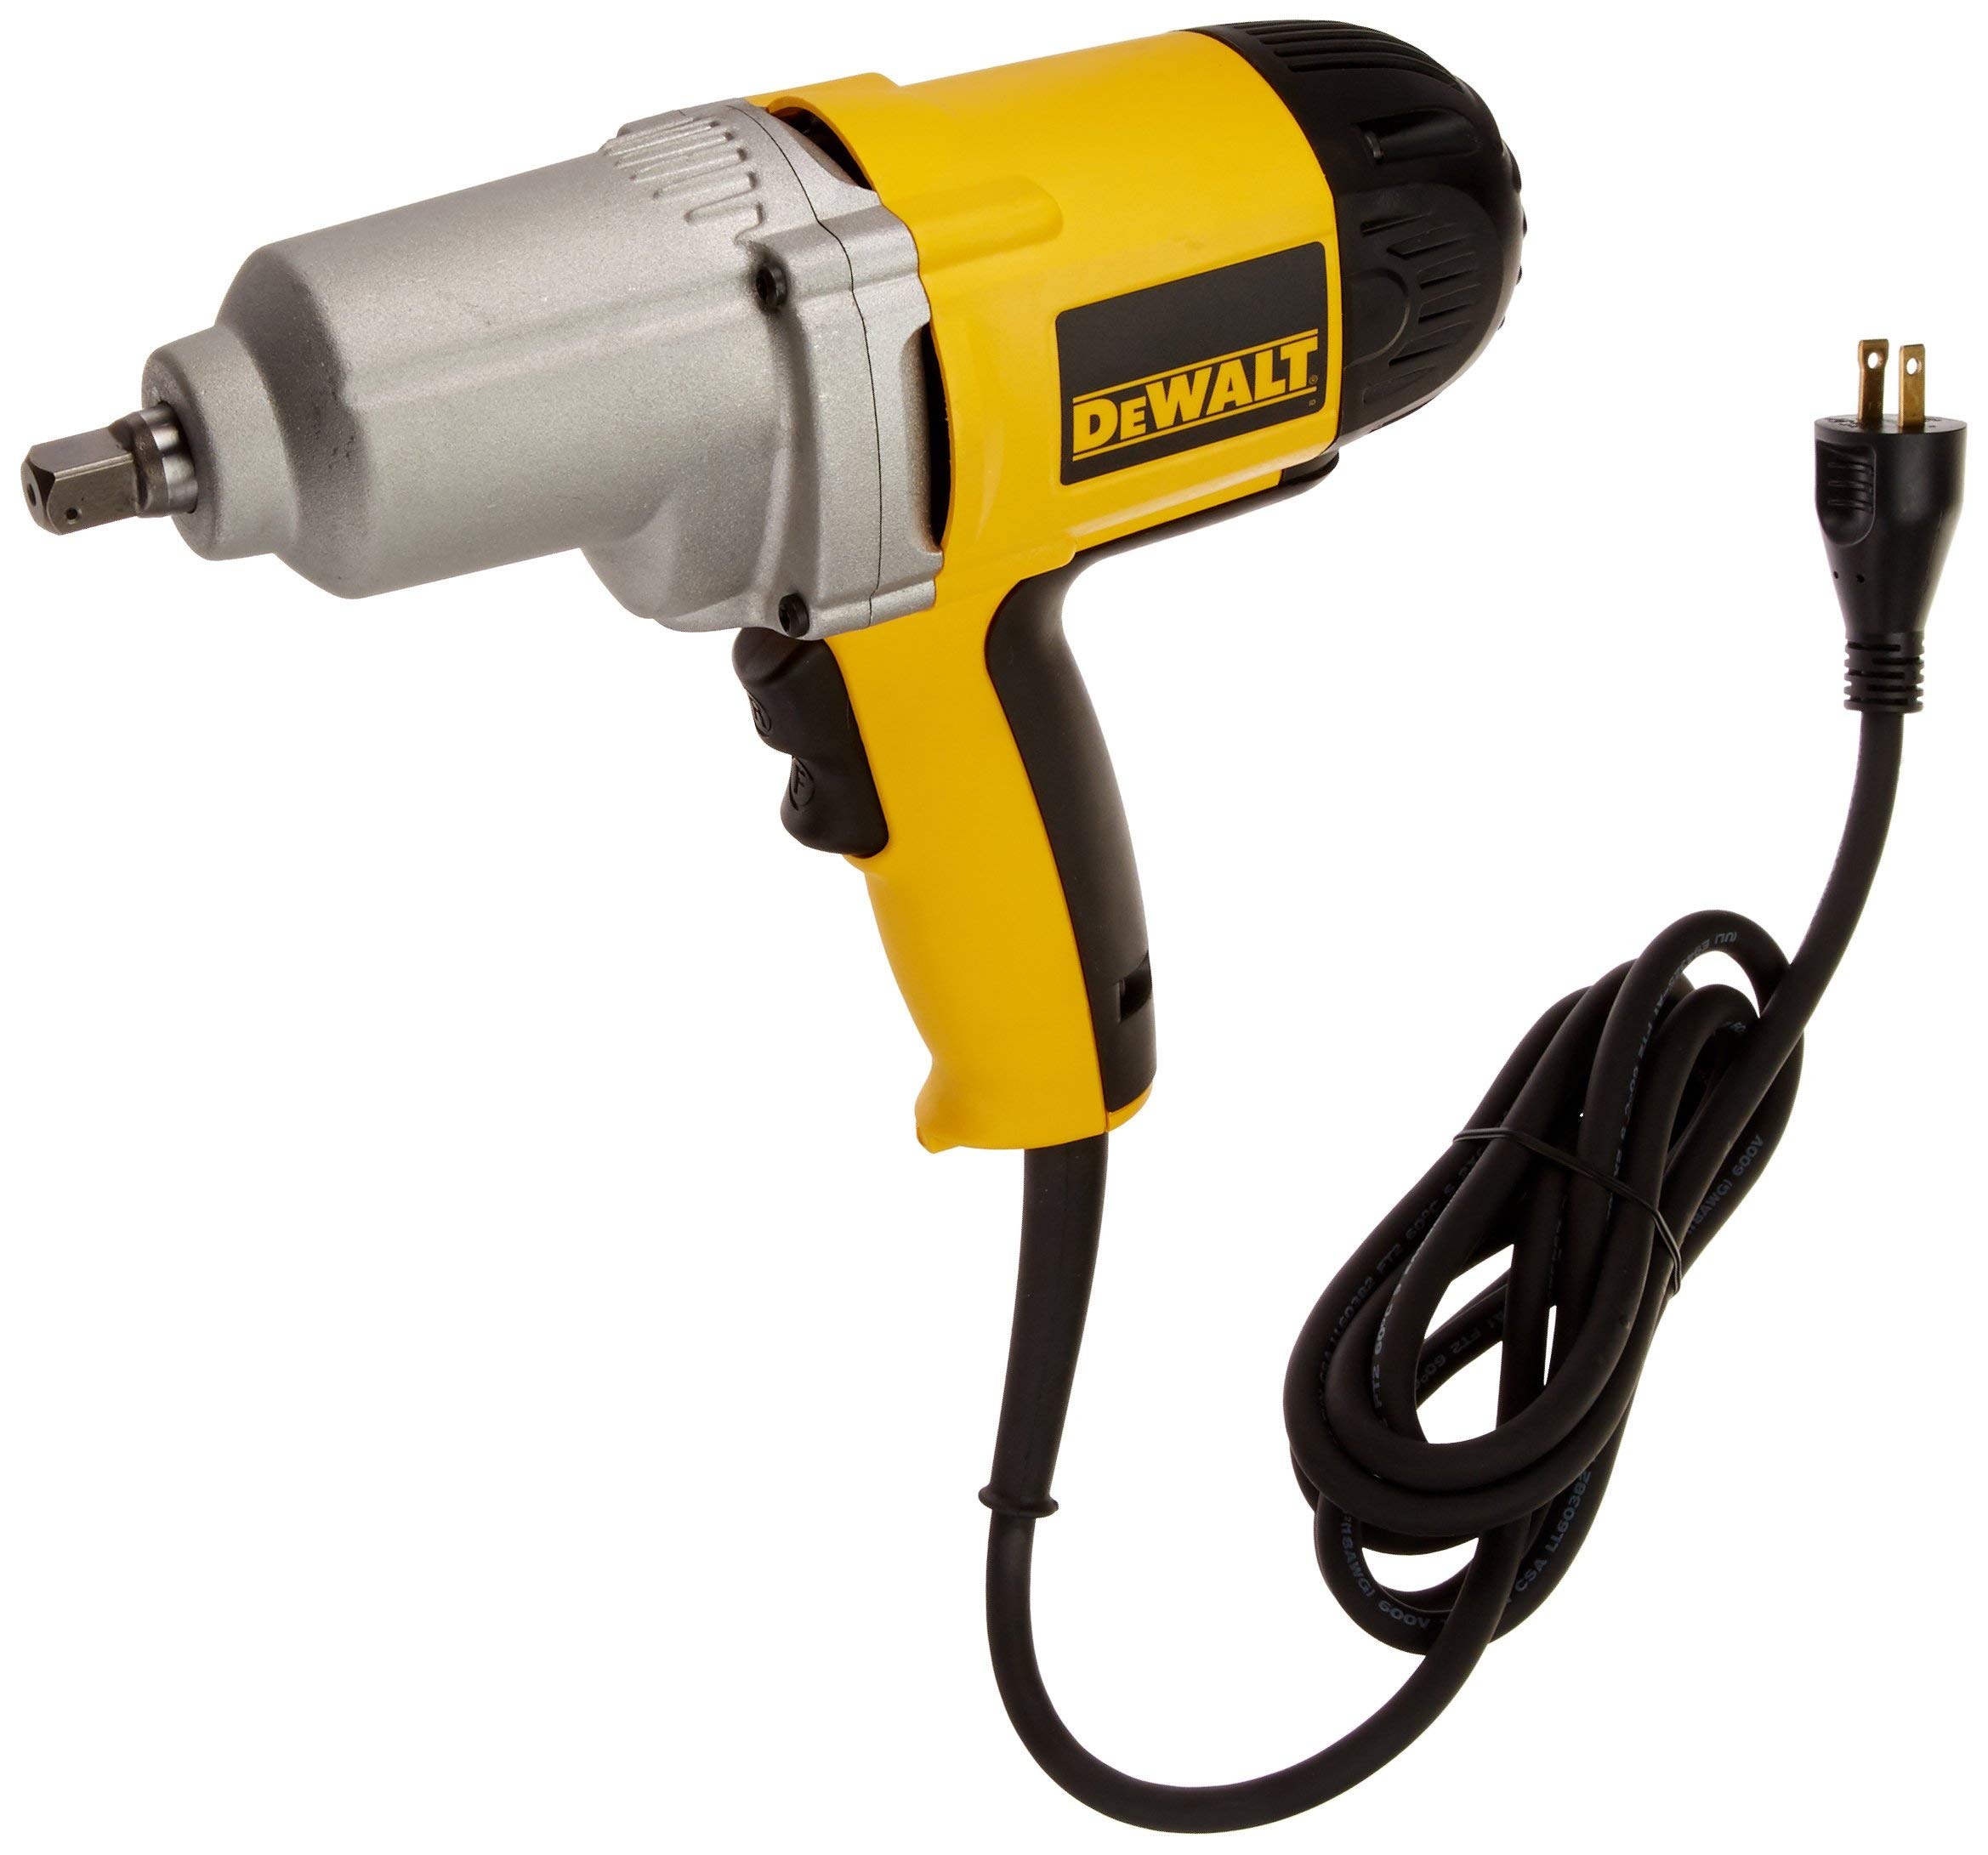 DEWALT DW292K 7.5 Amp 1/2-Inch Impact Wrench with Detent Pin Anvil (Certified Refurbished)